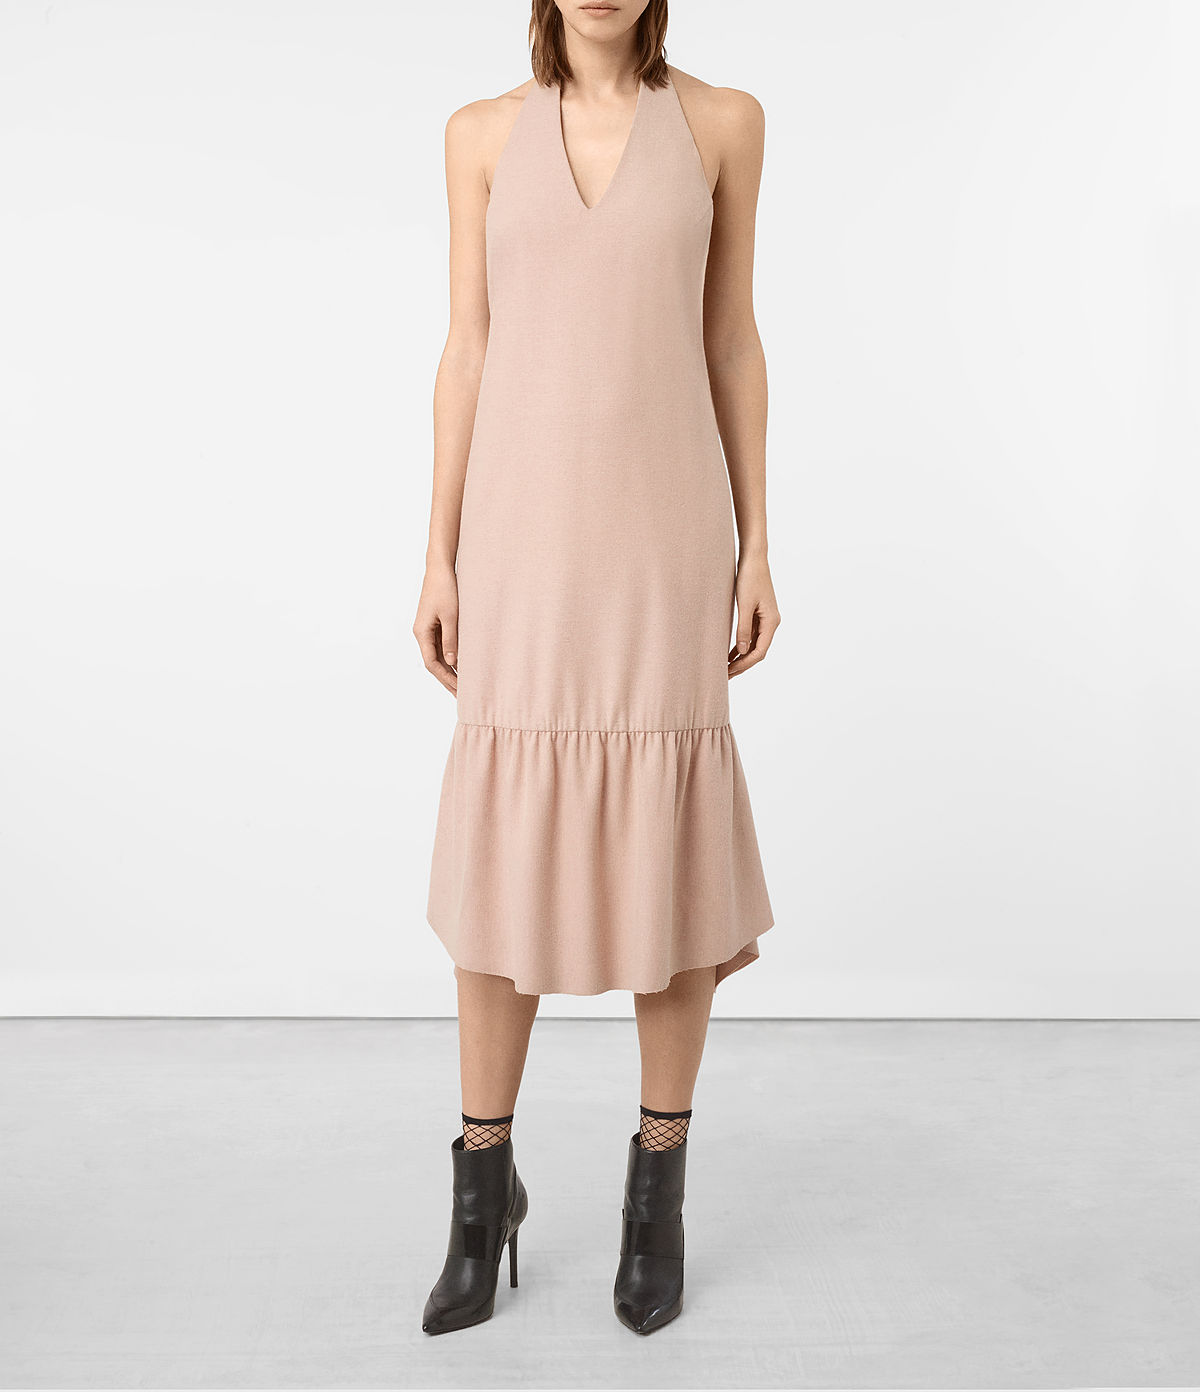 emelie-wool-dress